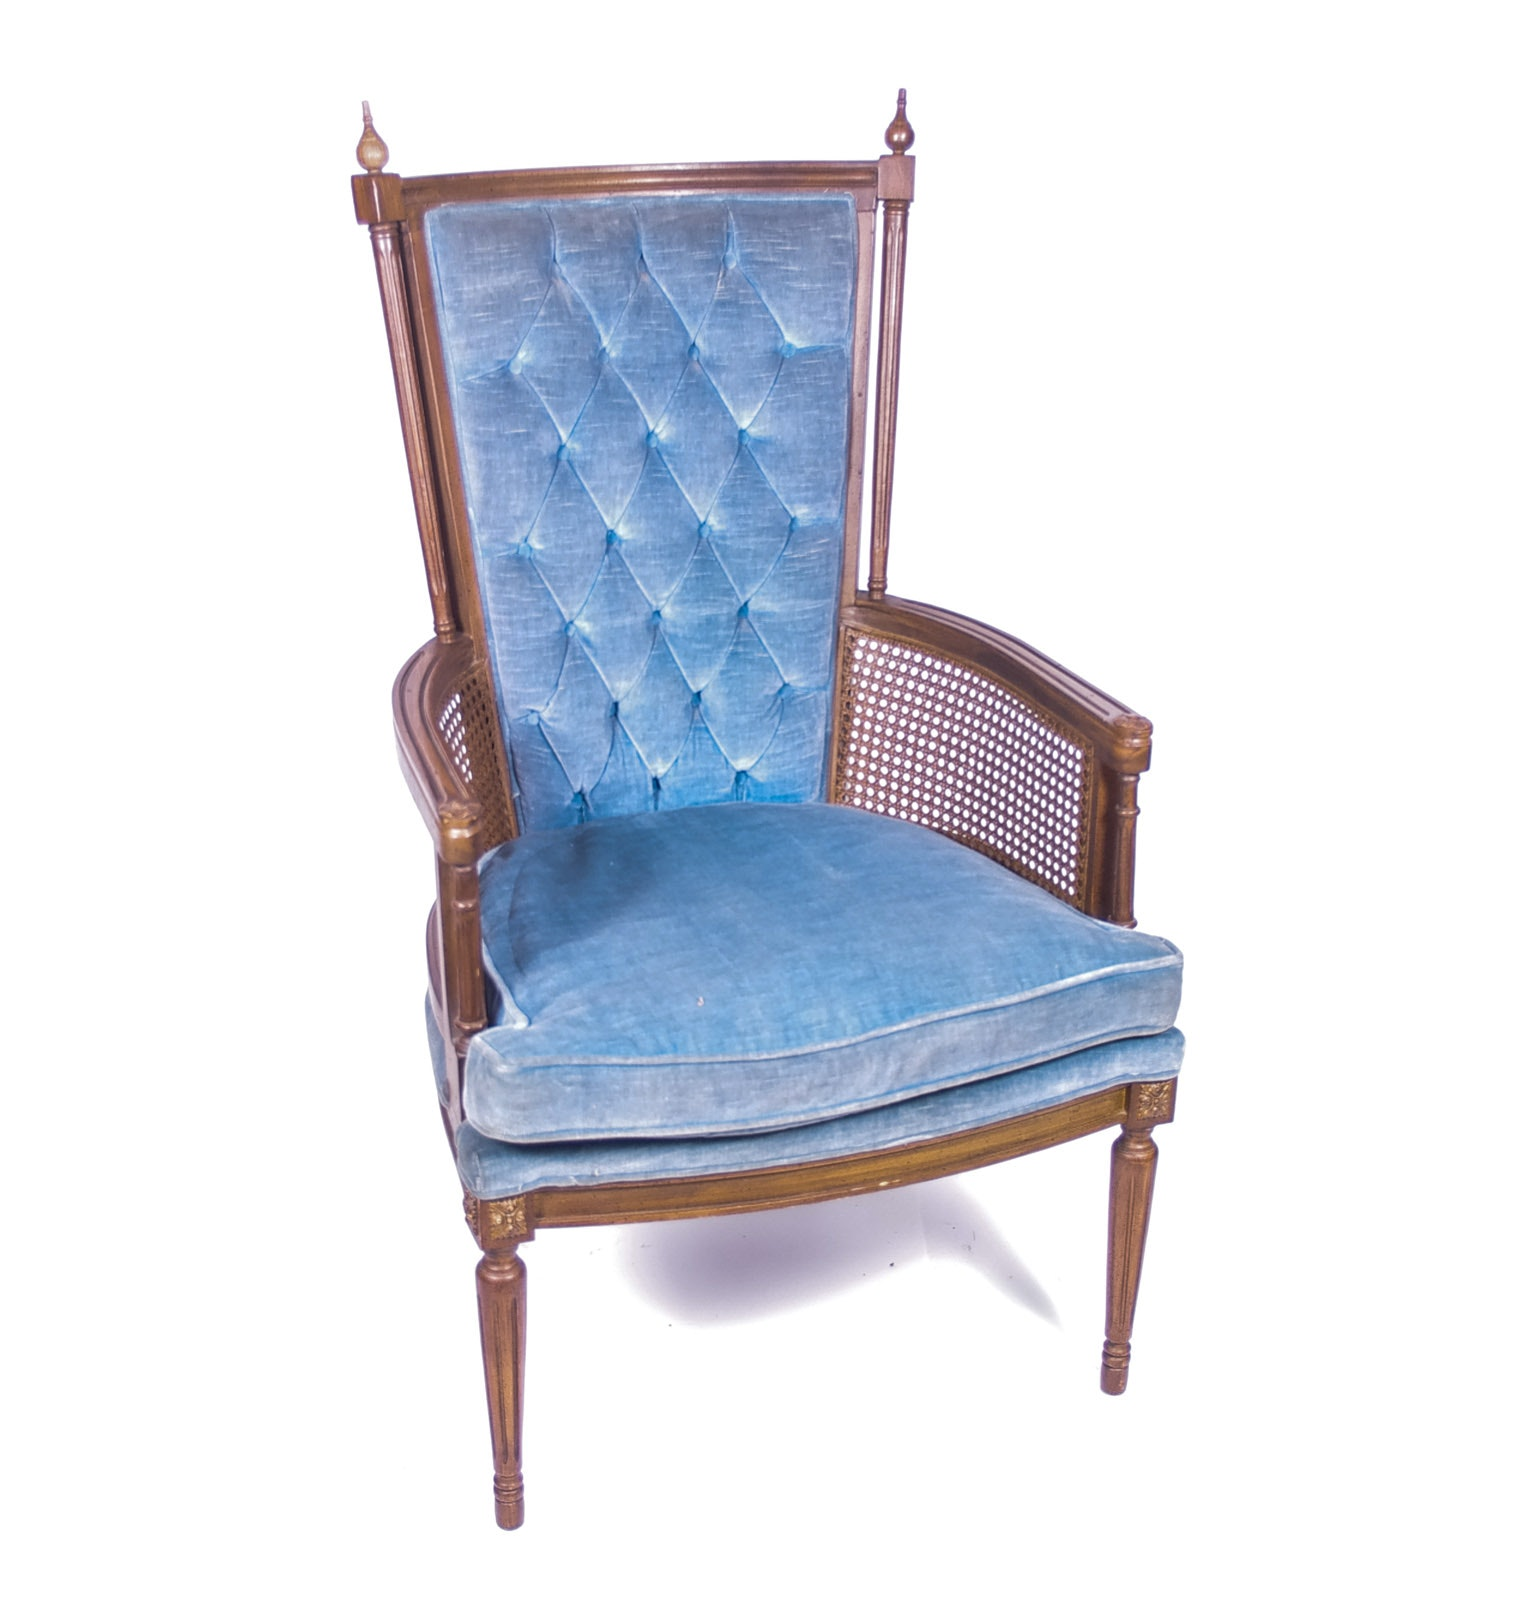 Upholstered High Back Arm Chair